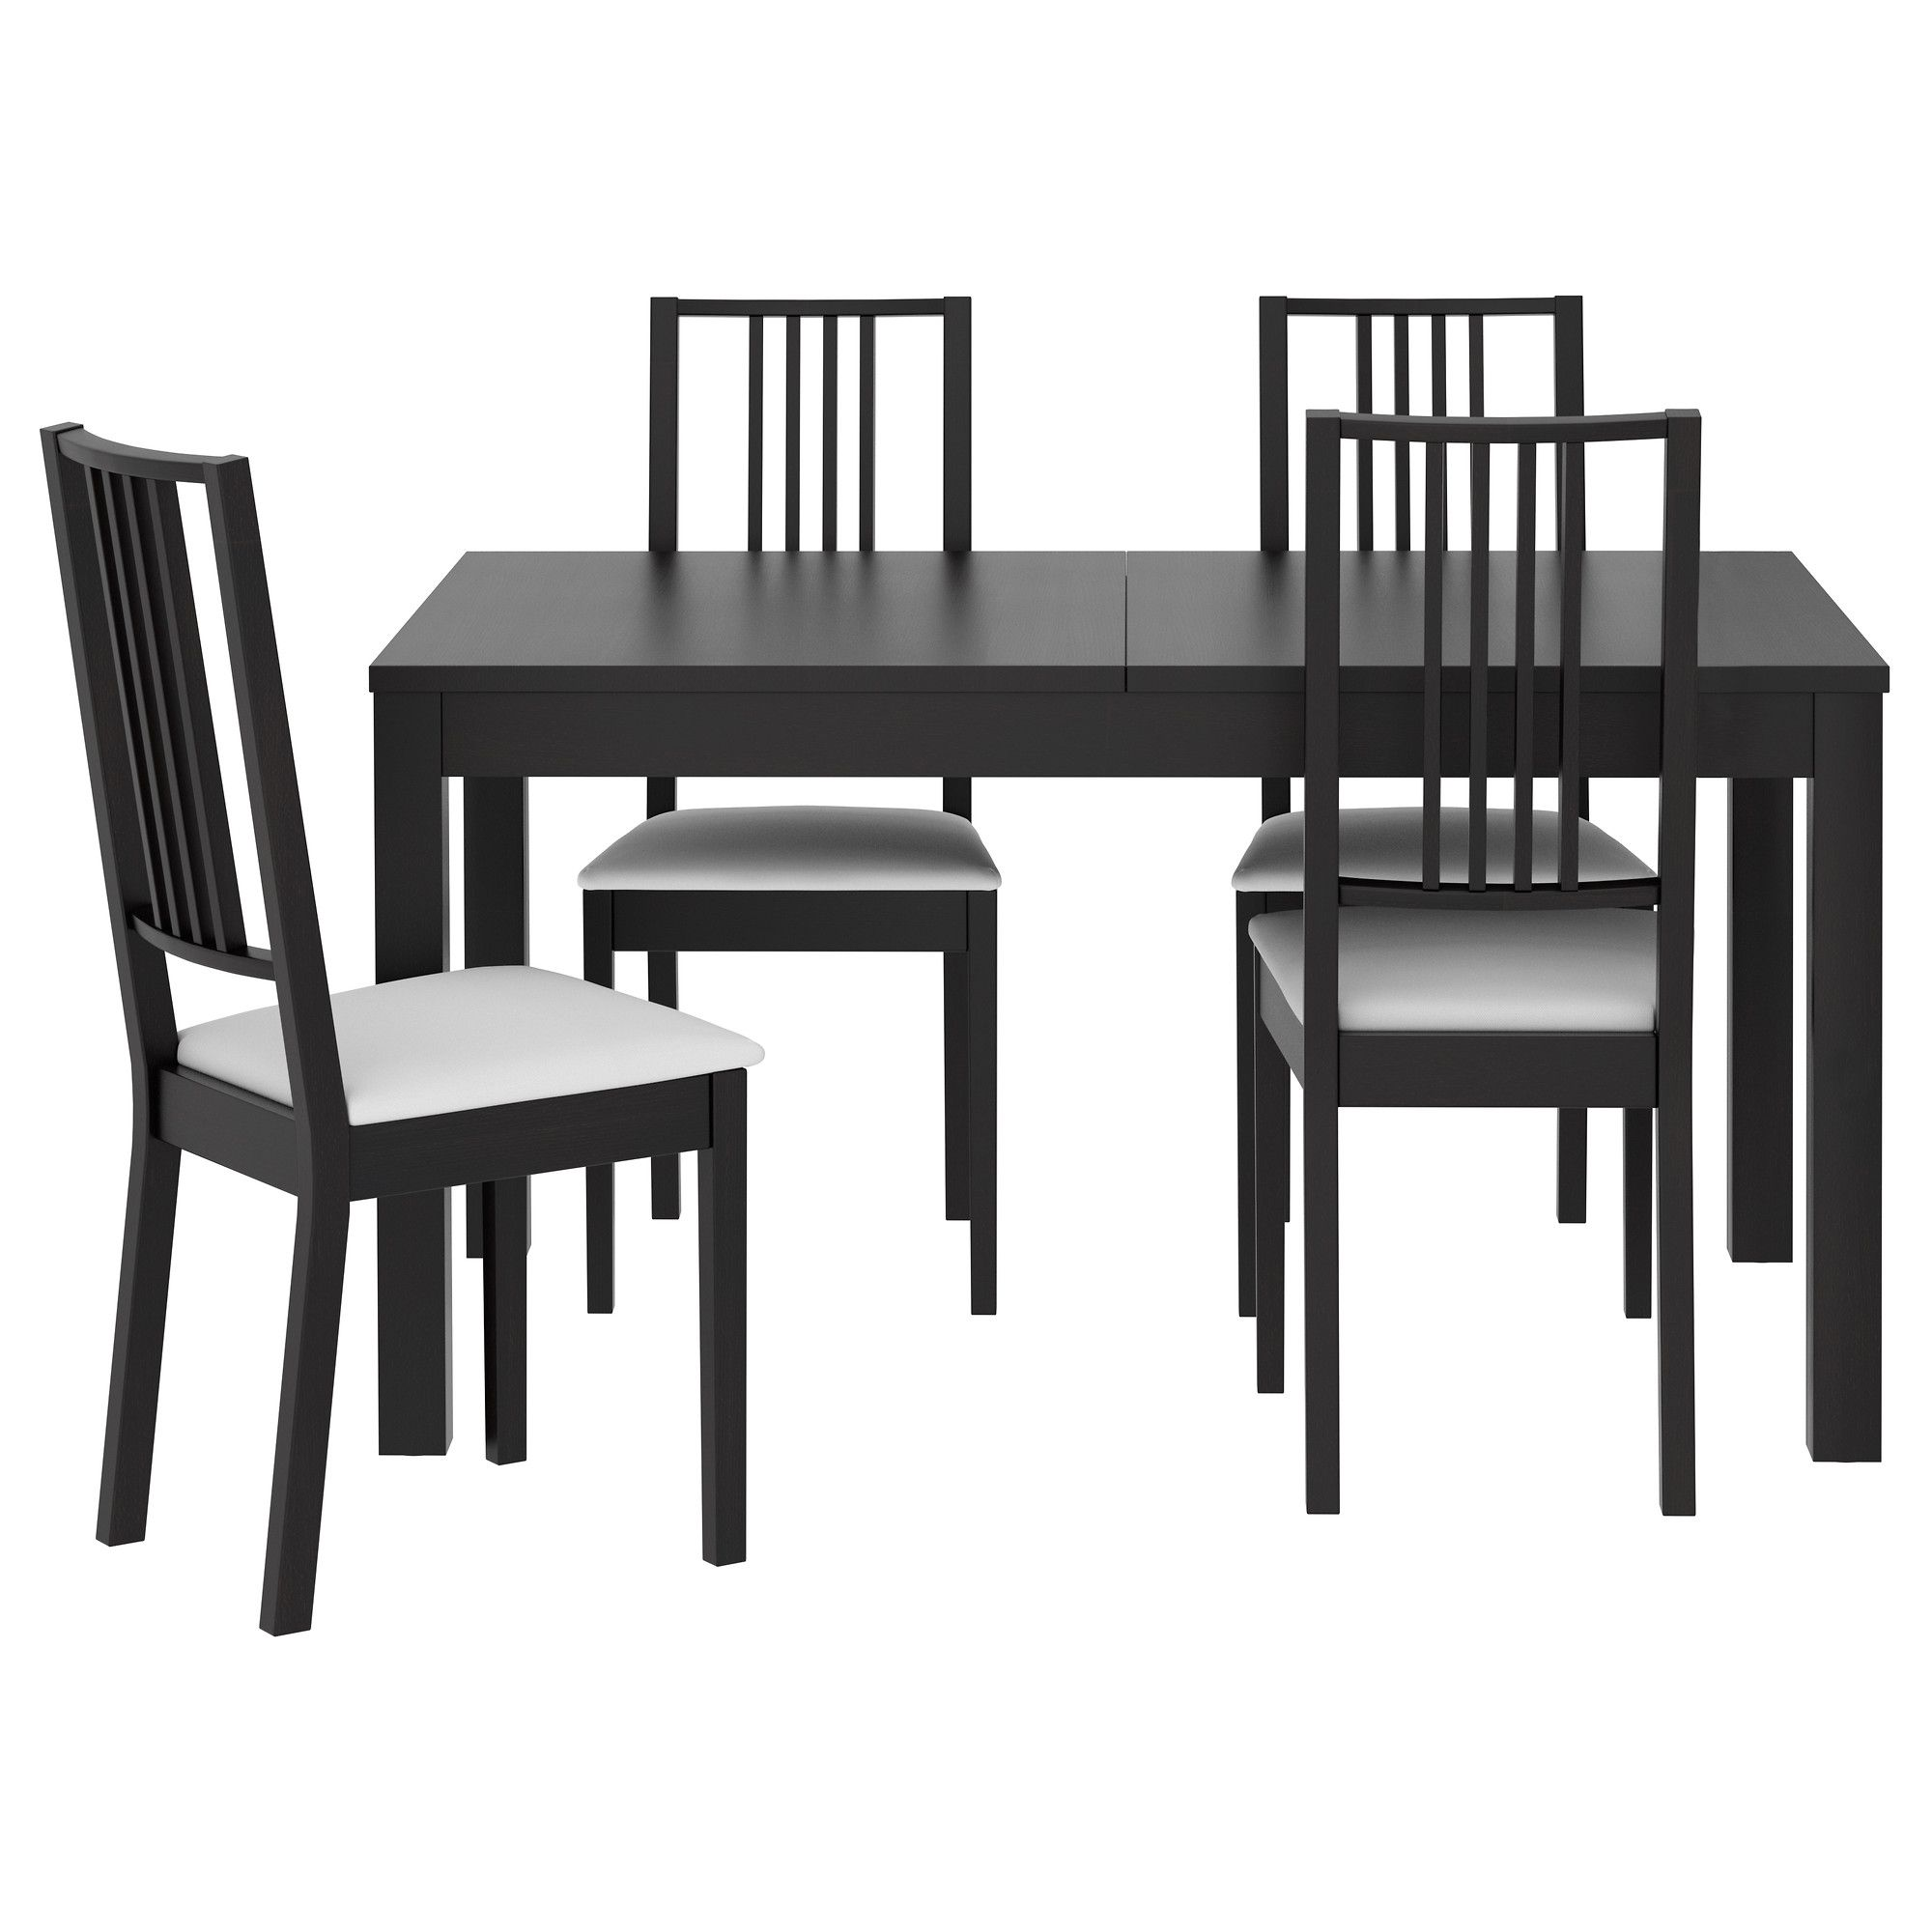 White Dining Table Ikea: US - Furniture And Home Furnishings